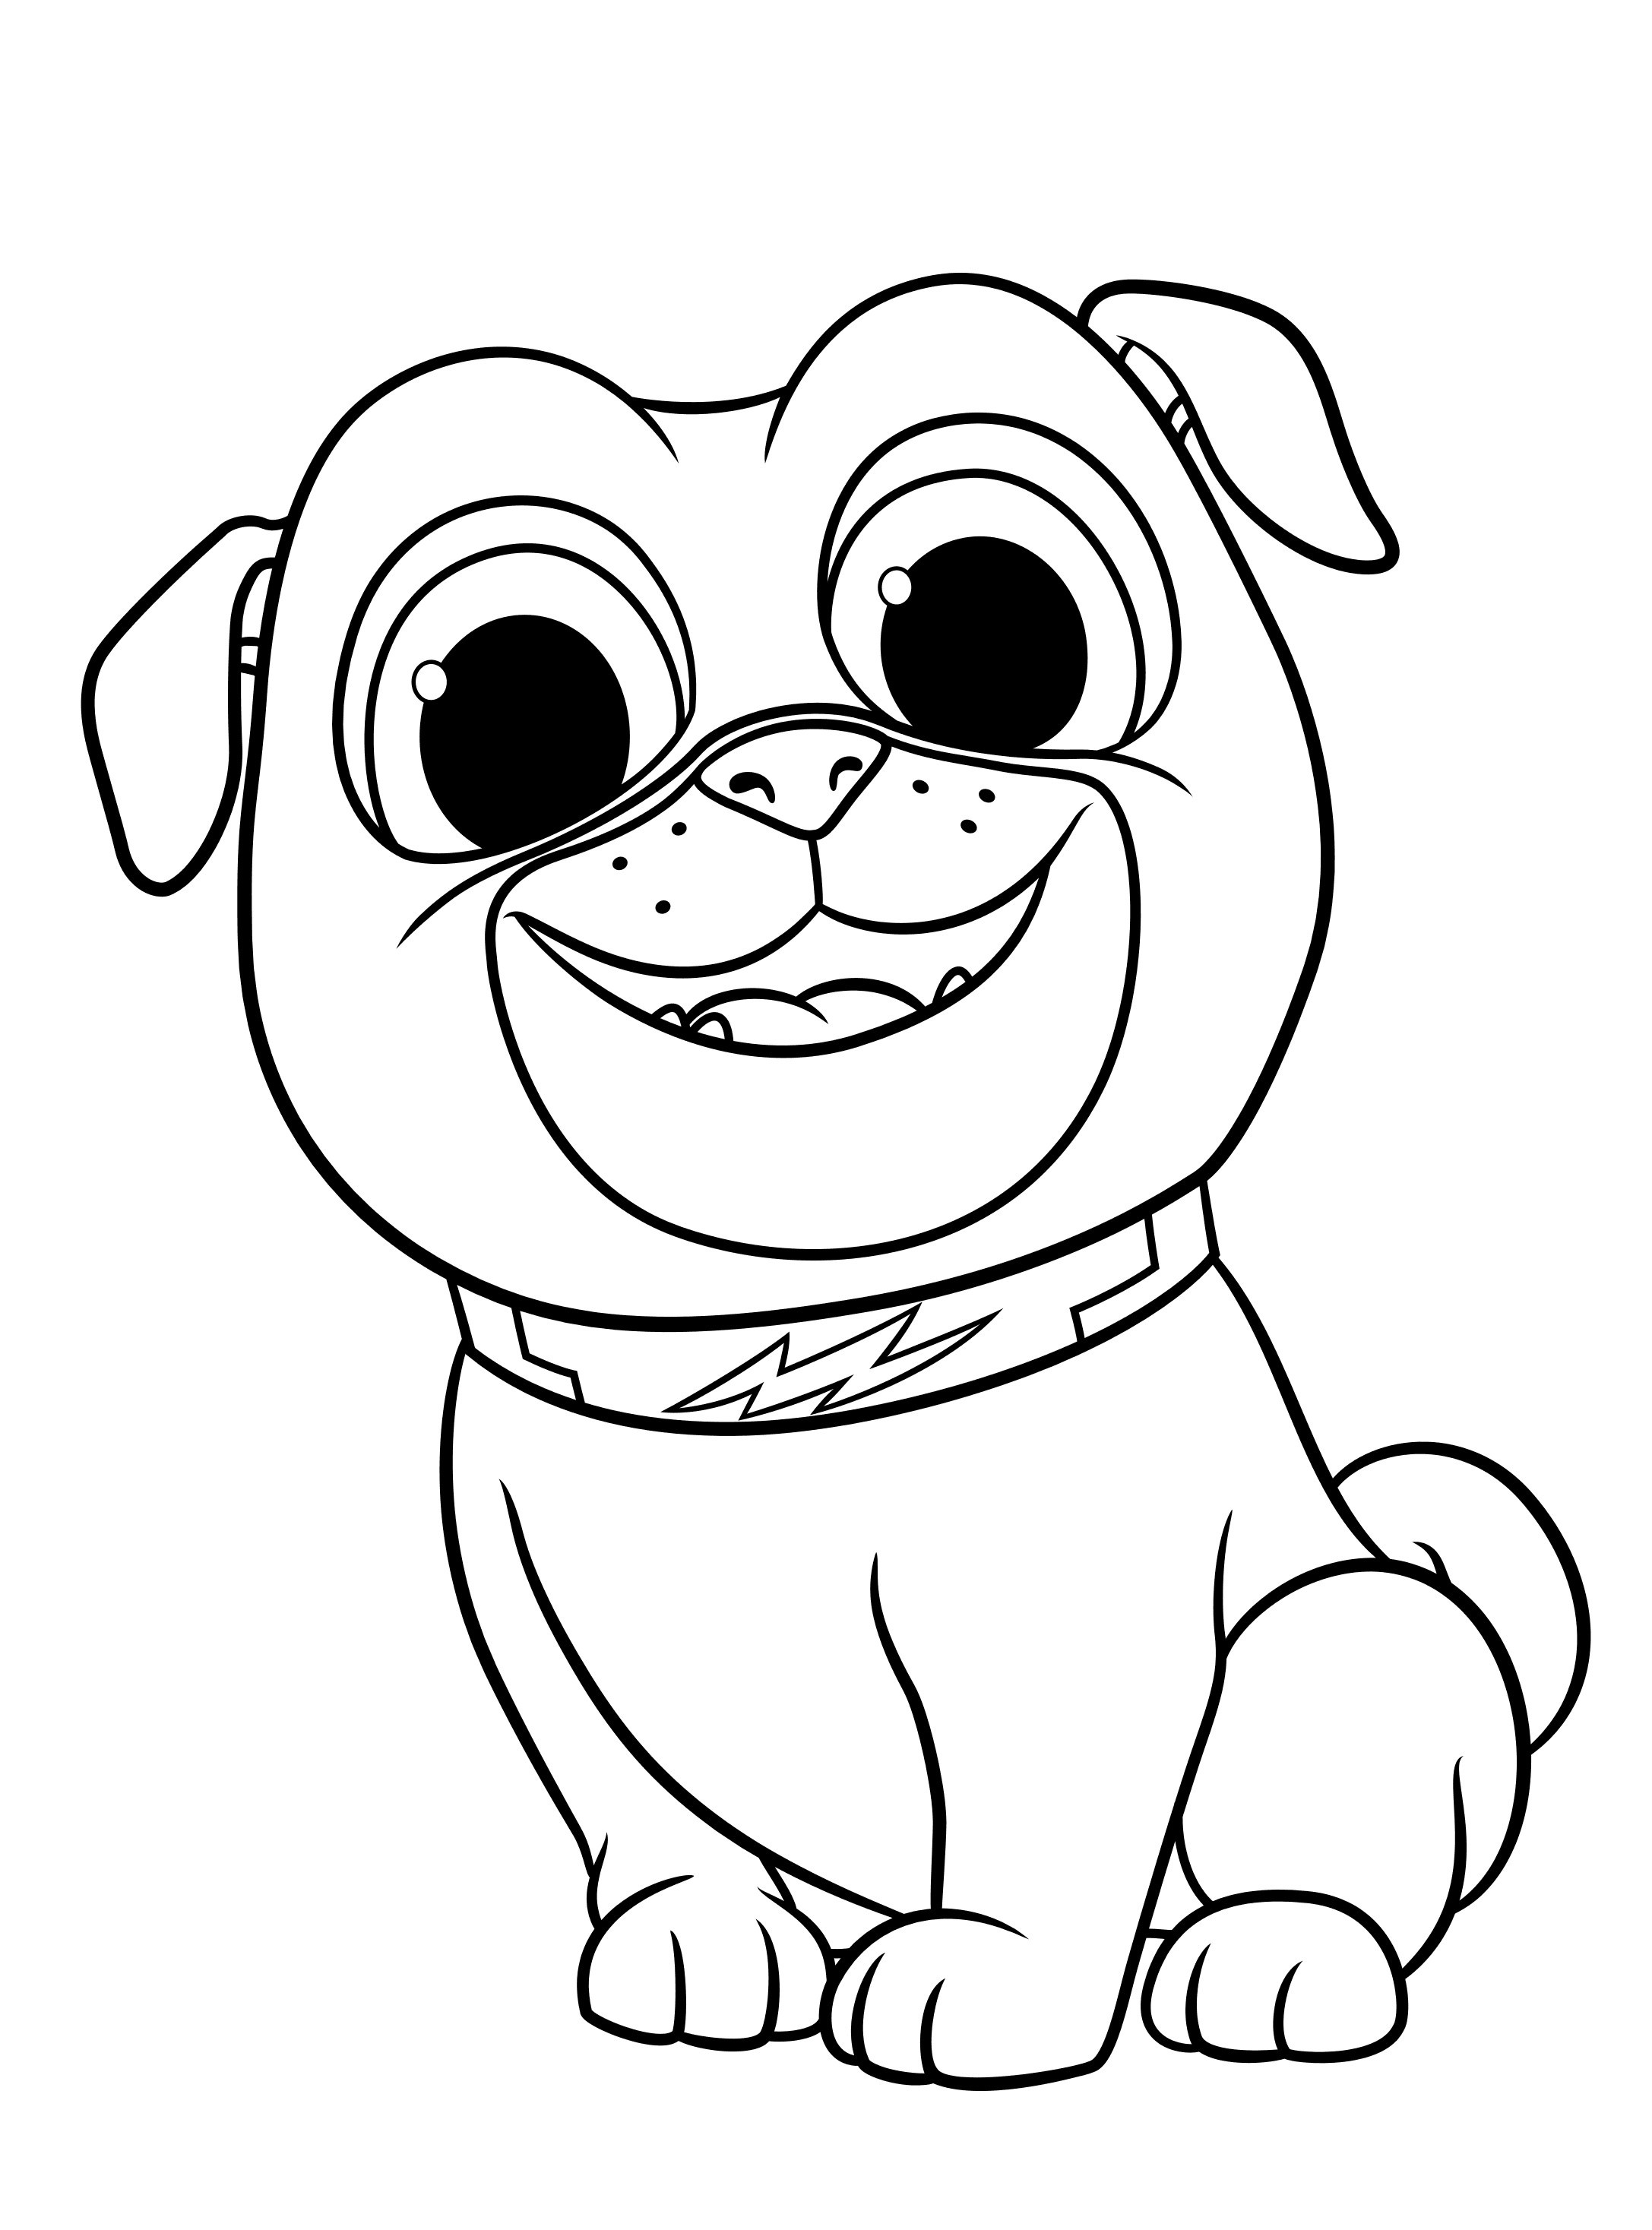 colour in pictures of dogs puppy coloring pages best coloring pages for kids pictures colour dogs in of